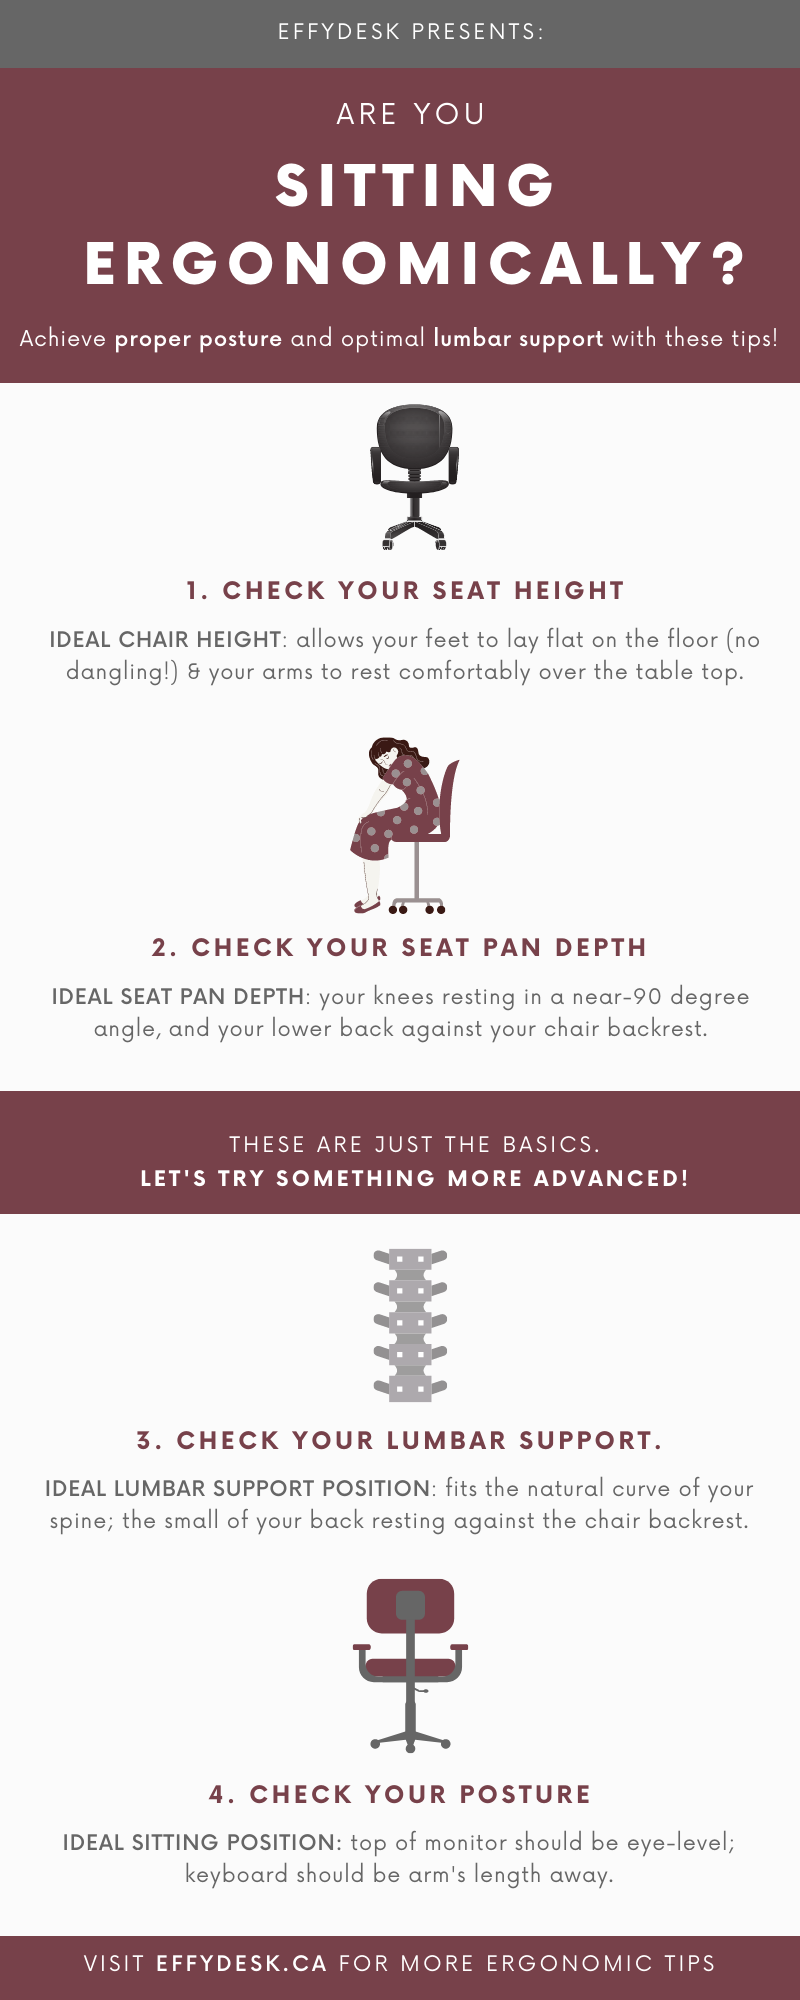 understand how your lumbar support be on an office chair